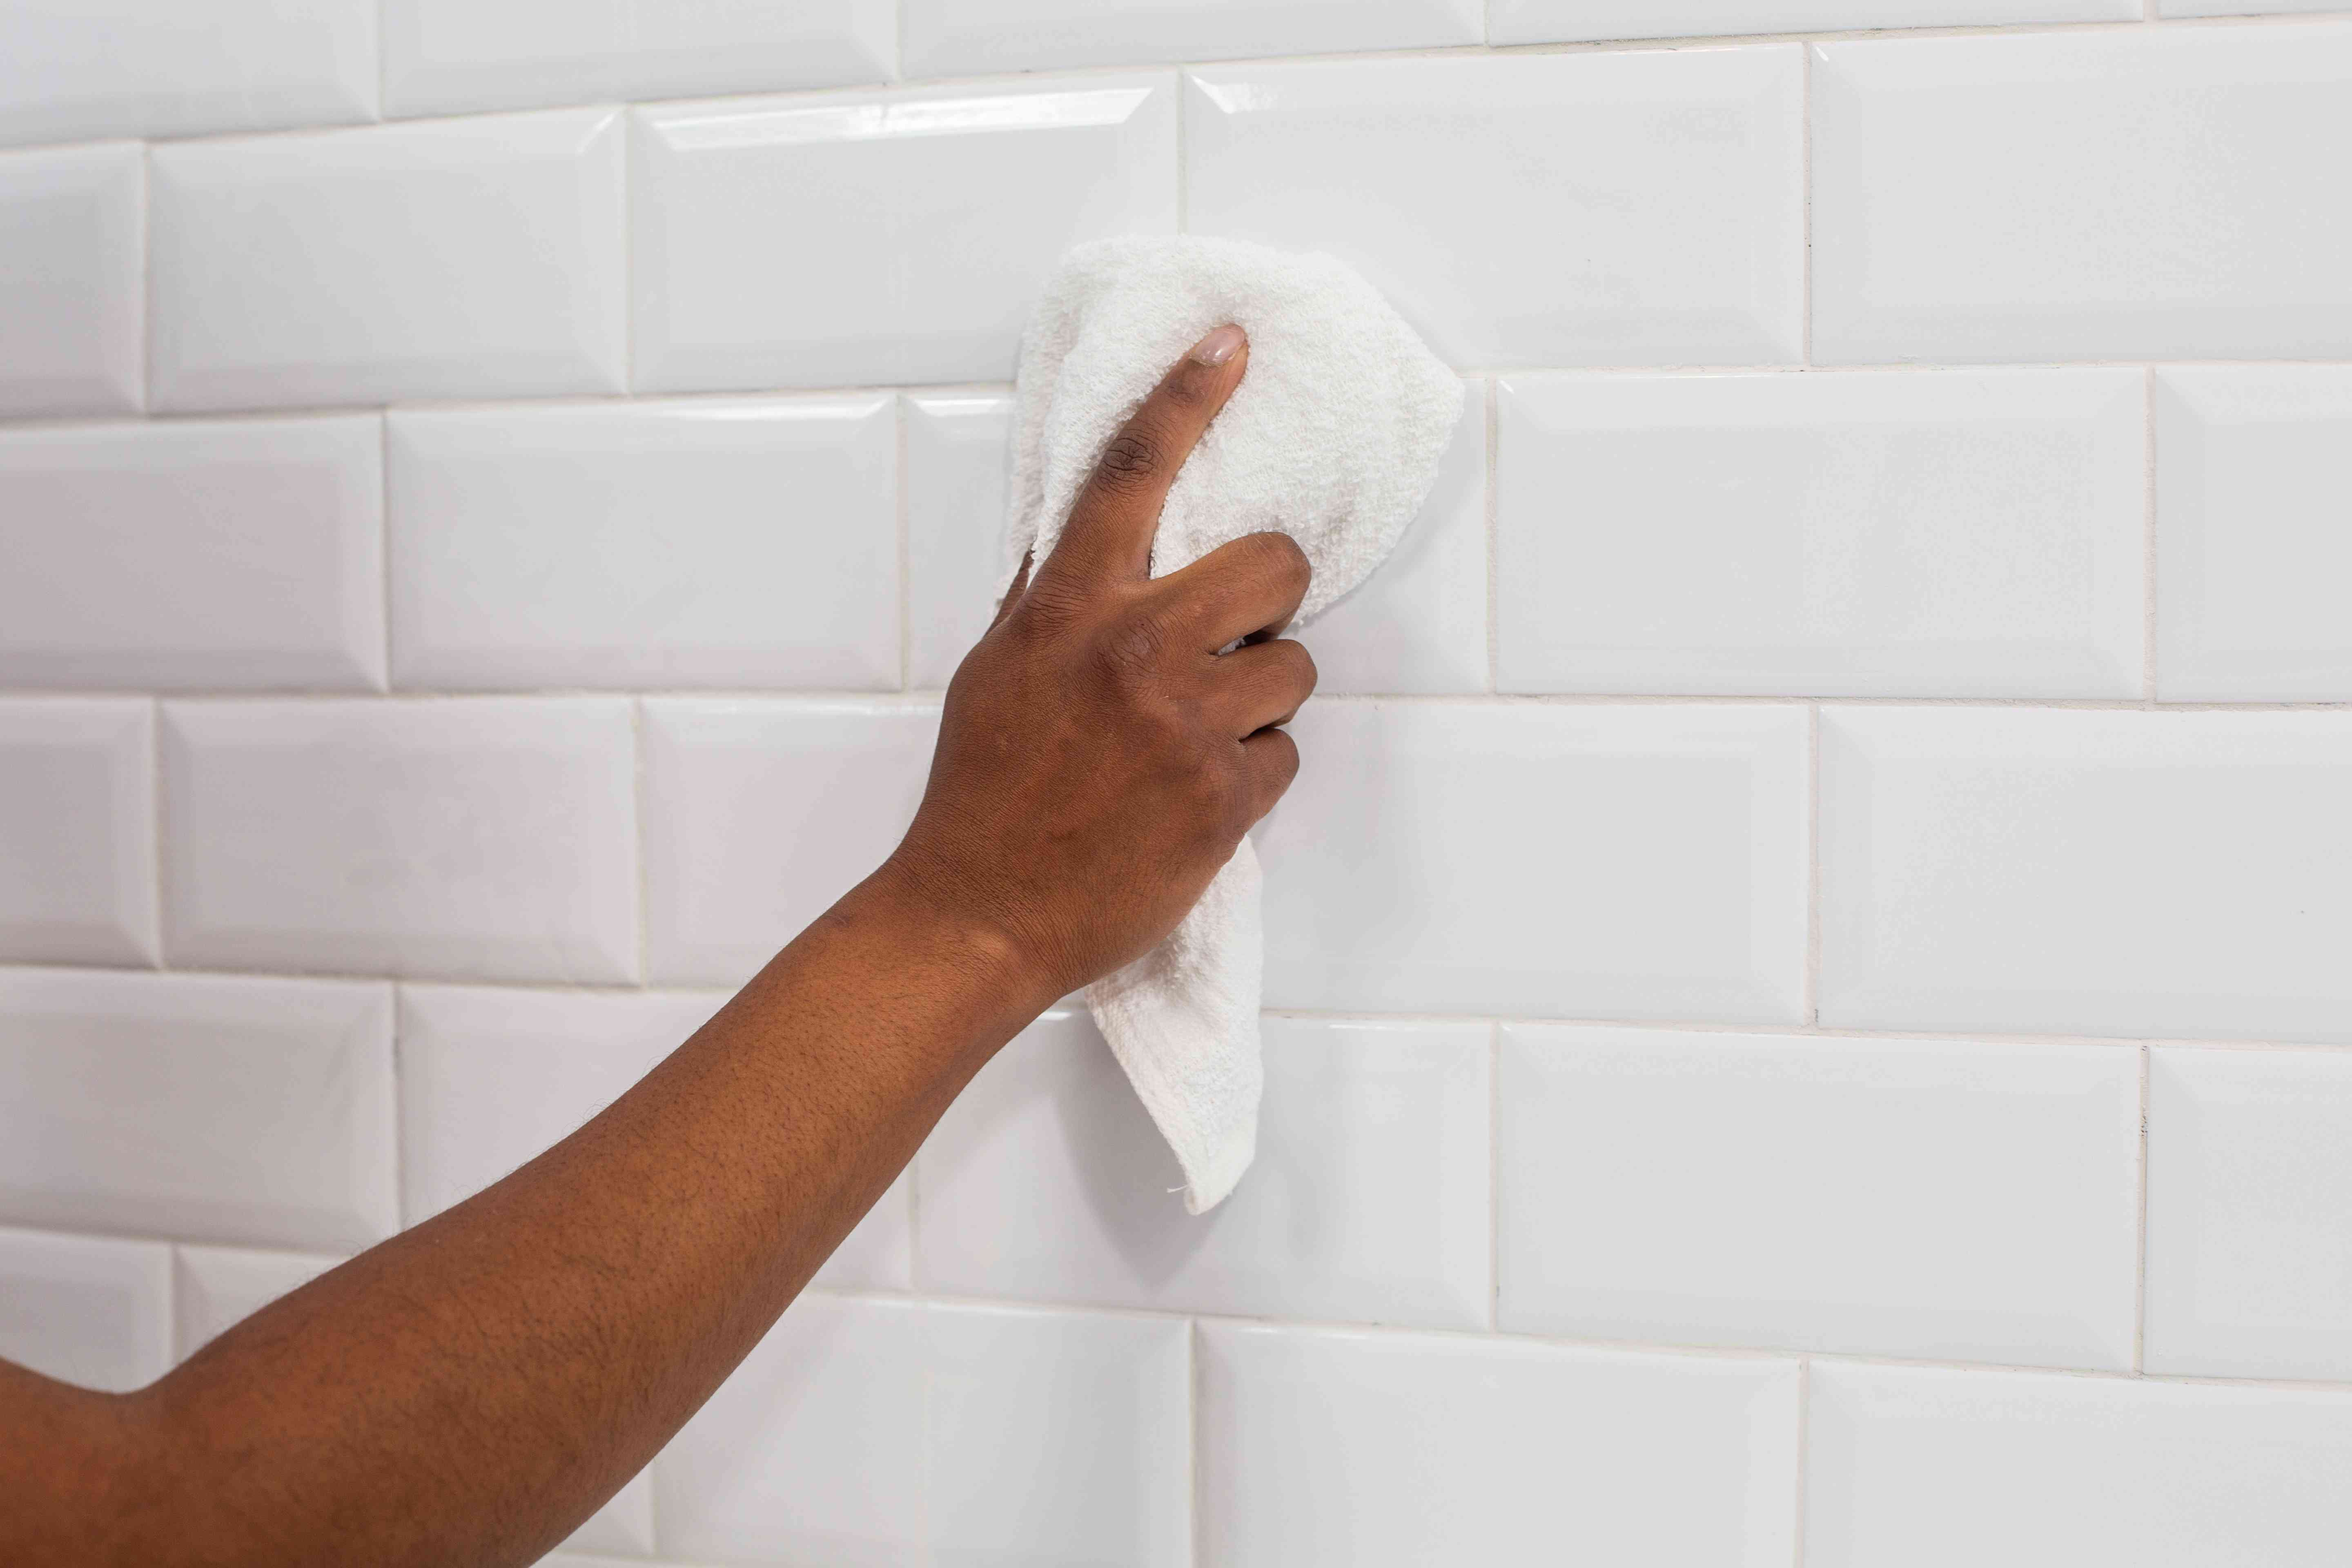 White ceramic wall tile cleaning haze with white towel